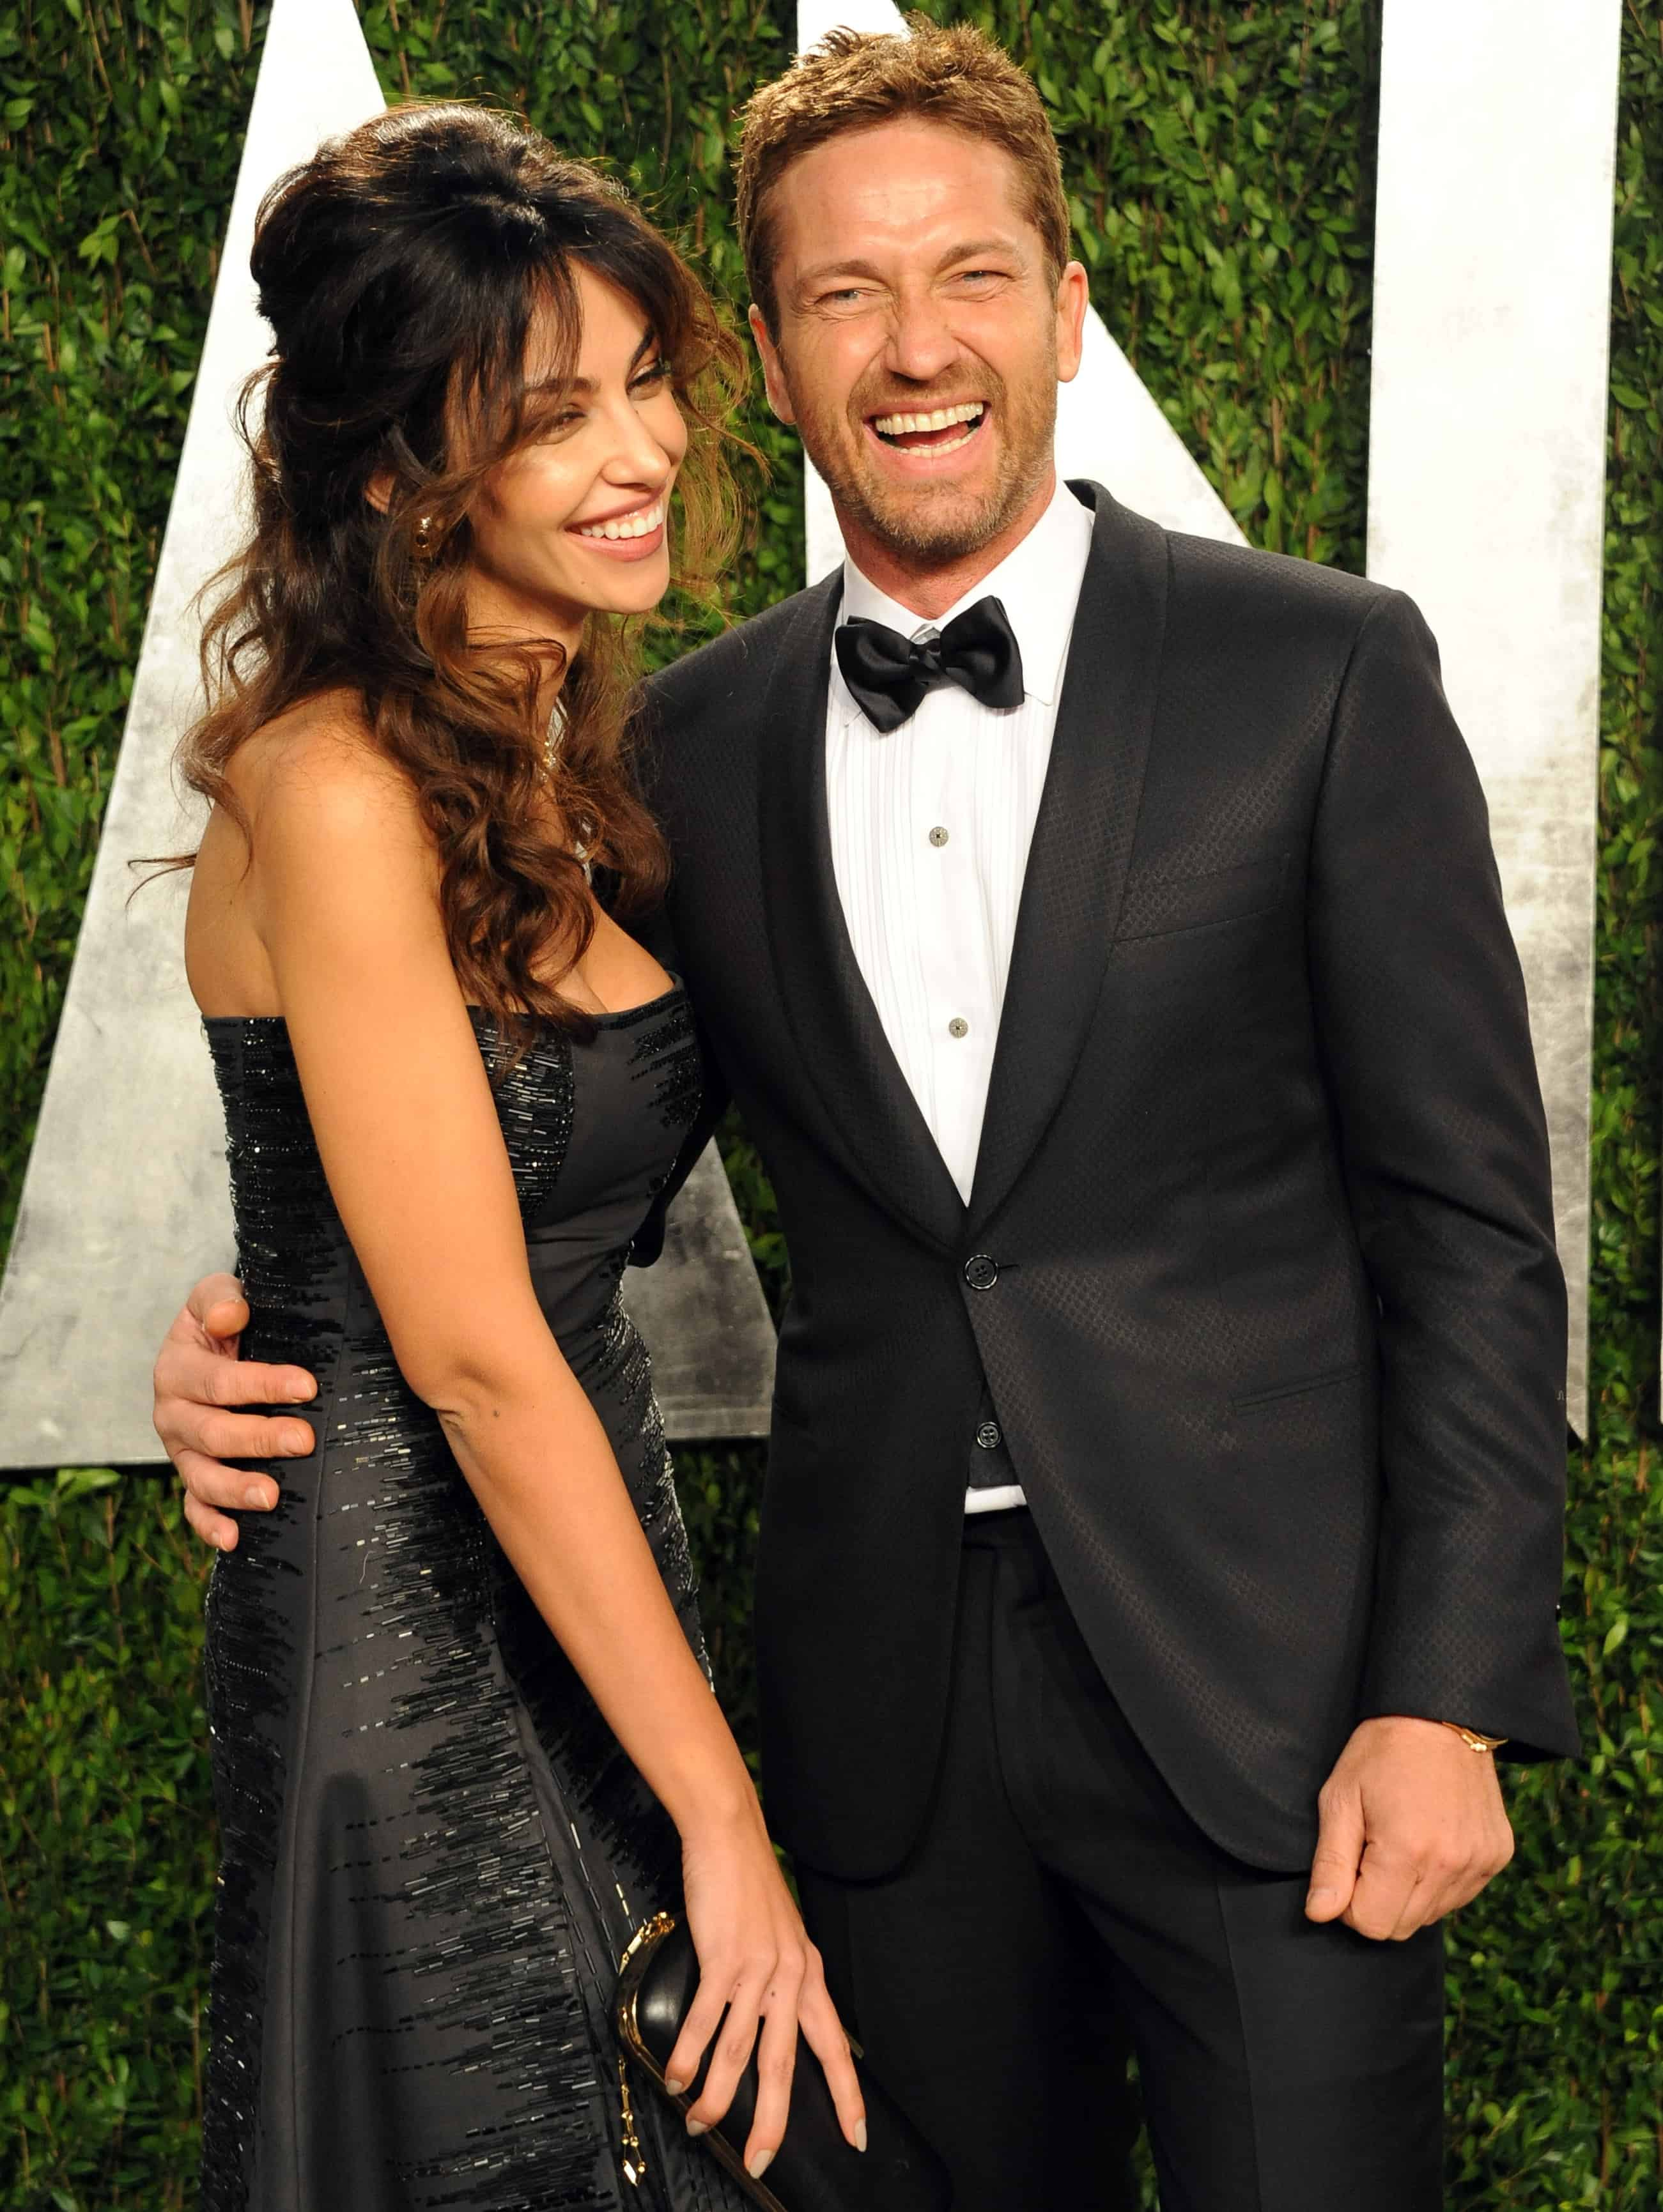 2 How Celebrities Partied After The Oscars? Sneak Peak Into The Vanity Fair After party...